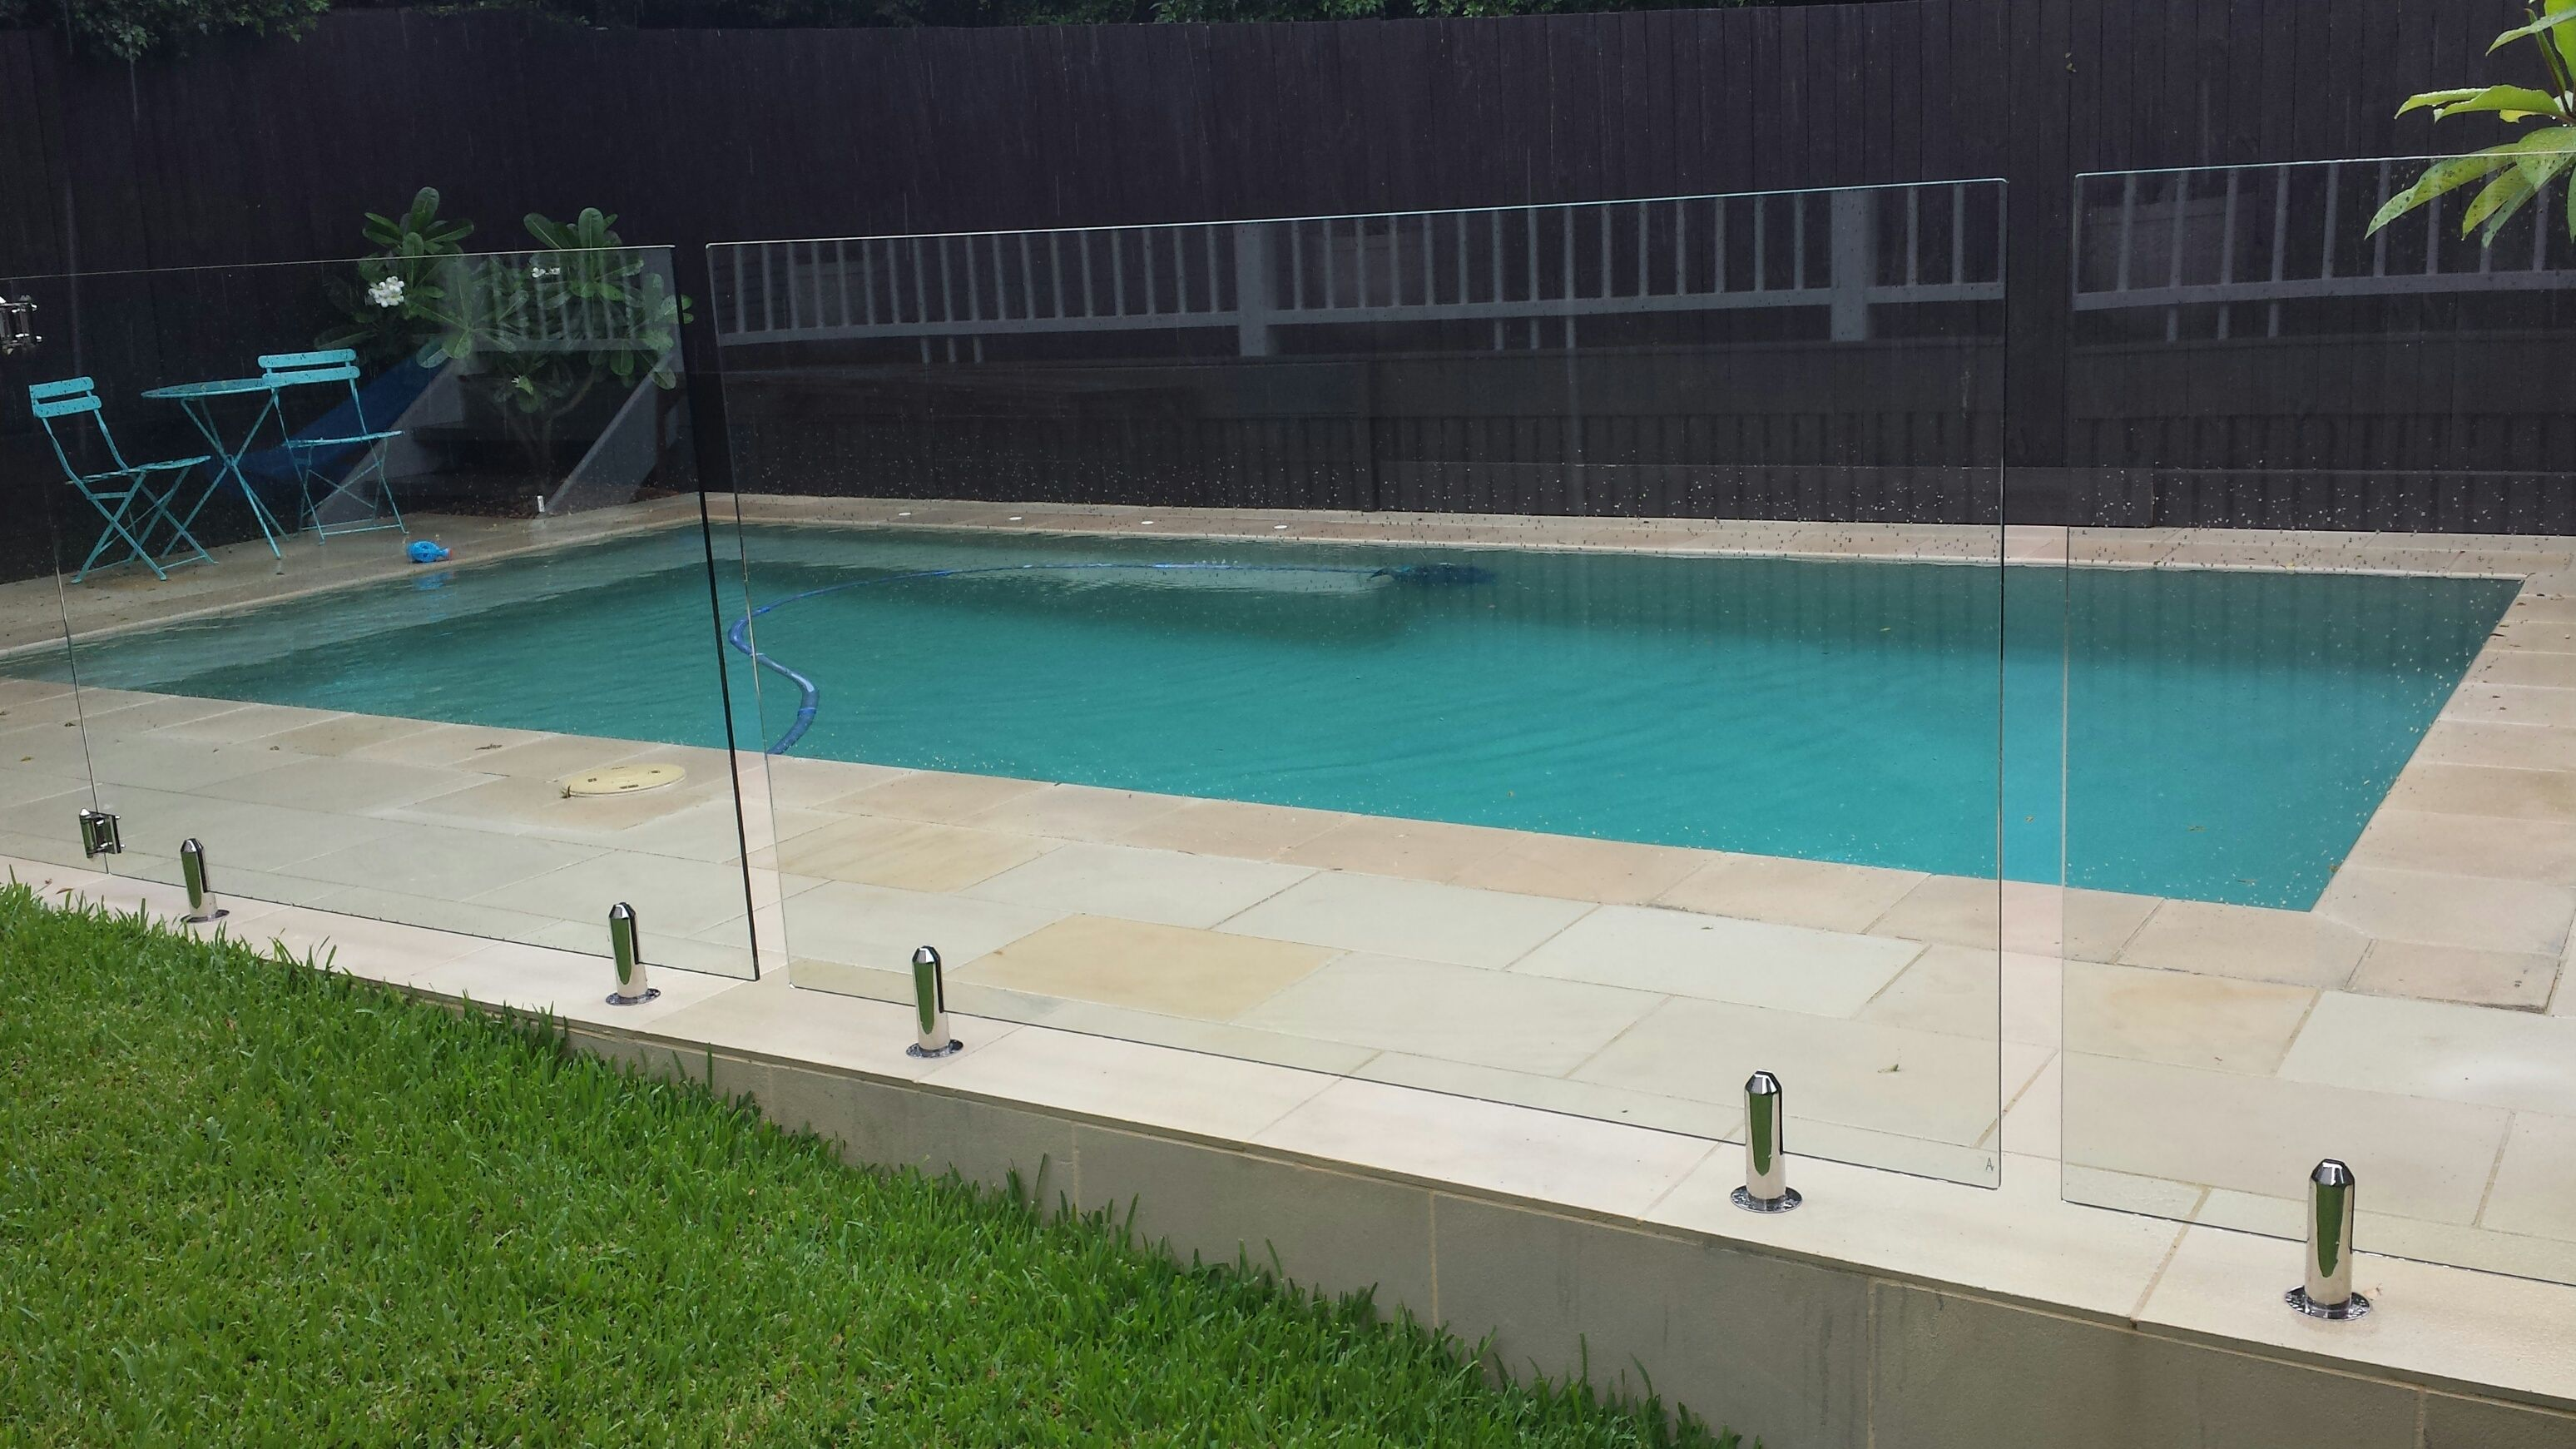 Sawn And Sandblasted Sandstone Paving And Coping Around Pool Glass Pool Fence Ecobuilt Landscaping B Glass Pool Fencing Backyard Pool Landscaping Pool Paving